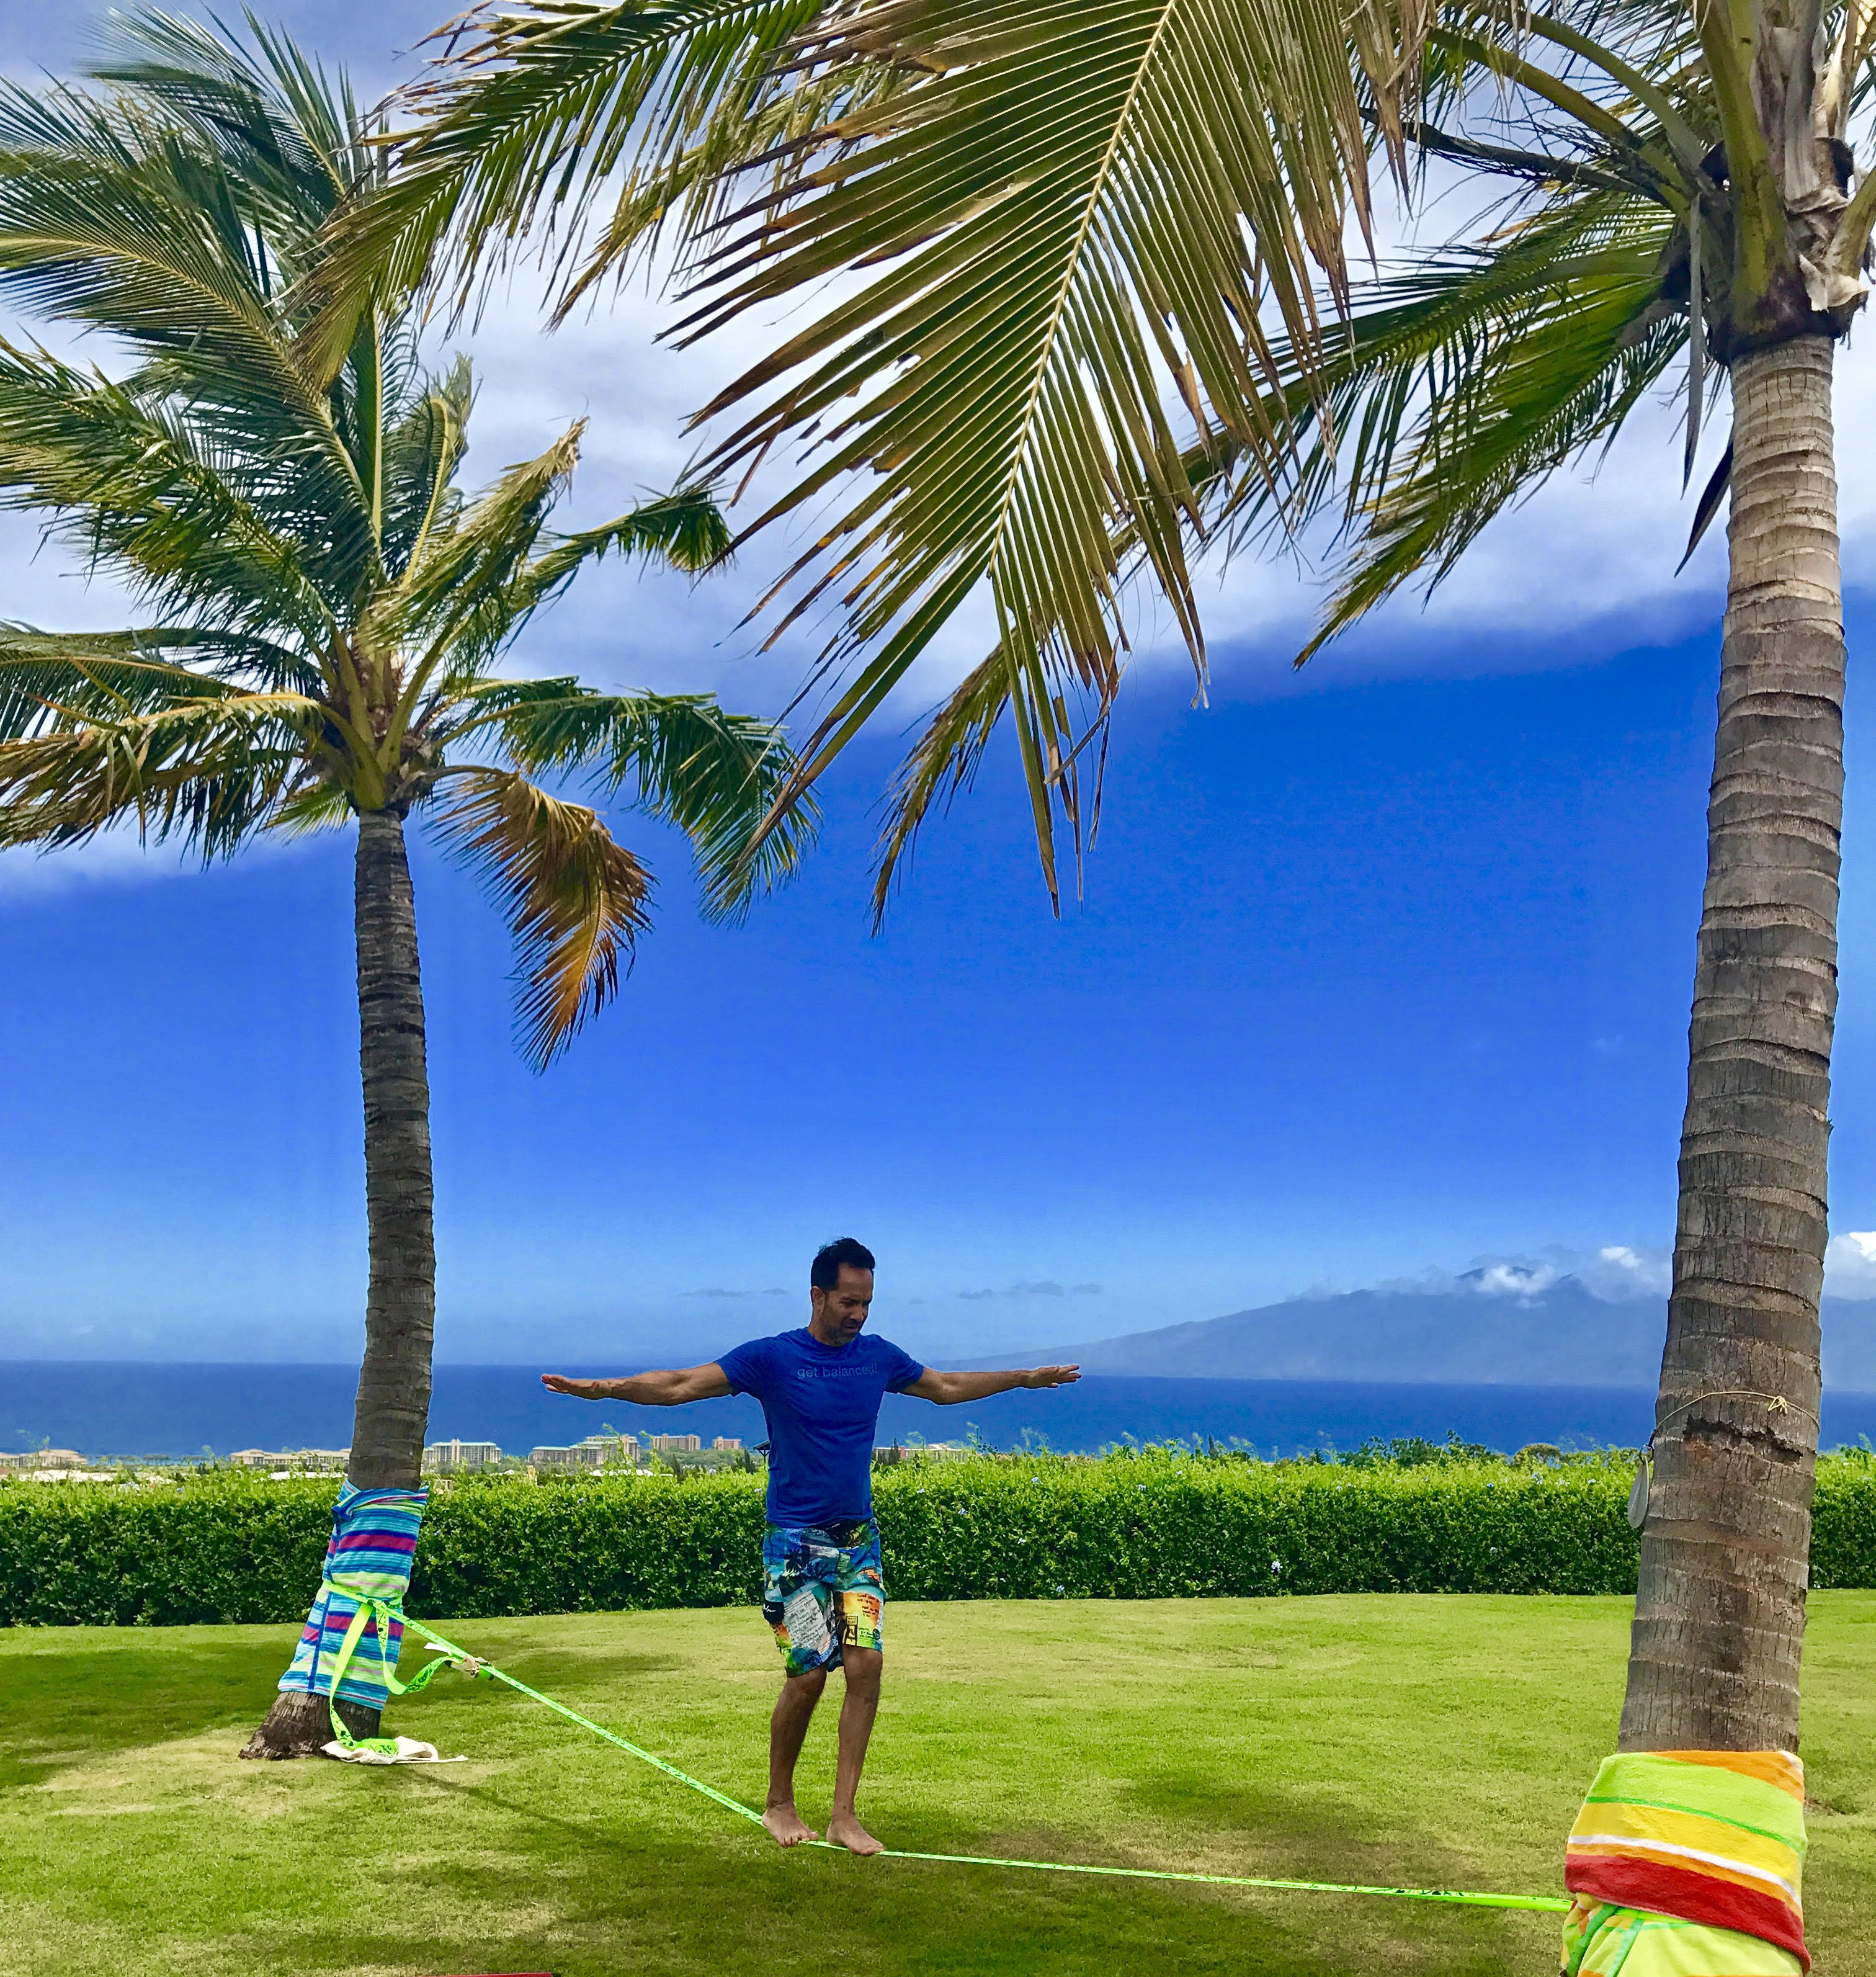 Man on slackline, part of his personal trainer to go program, in tropical setting.